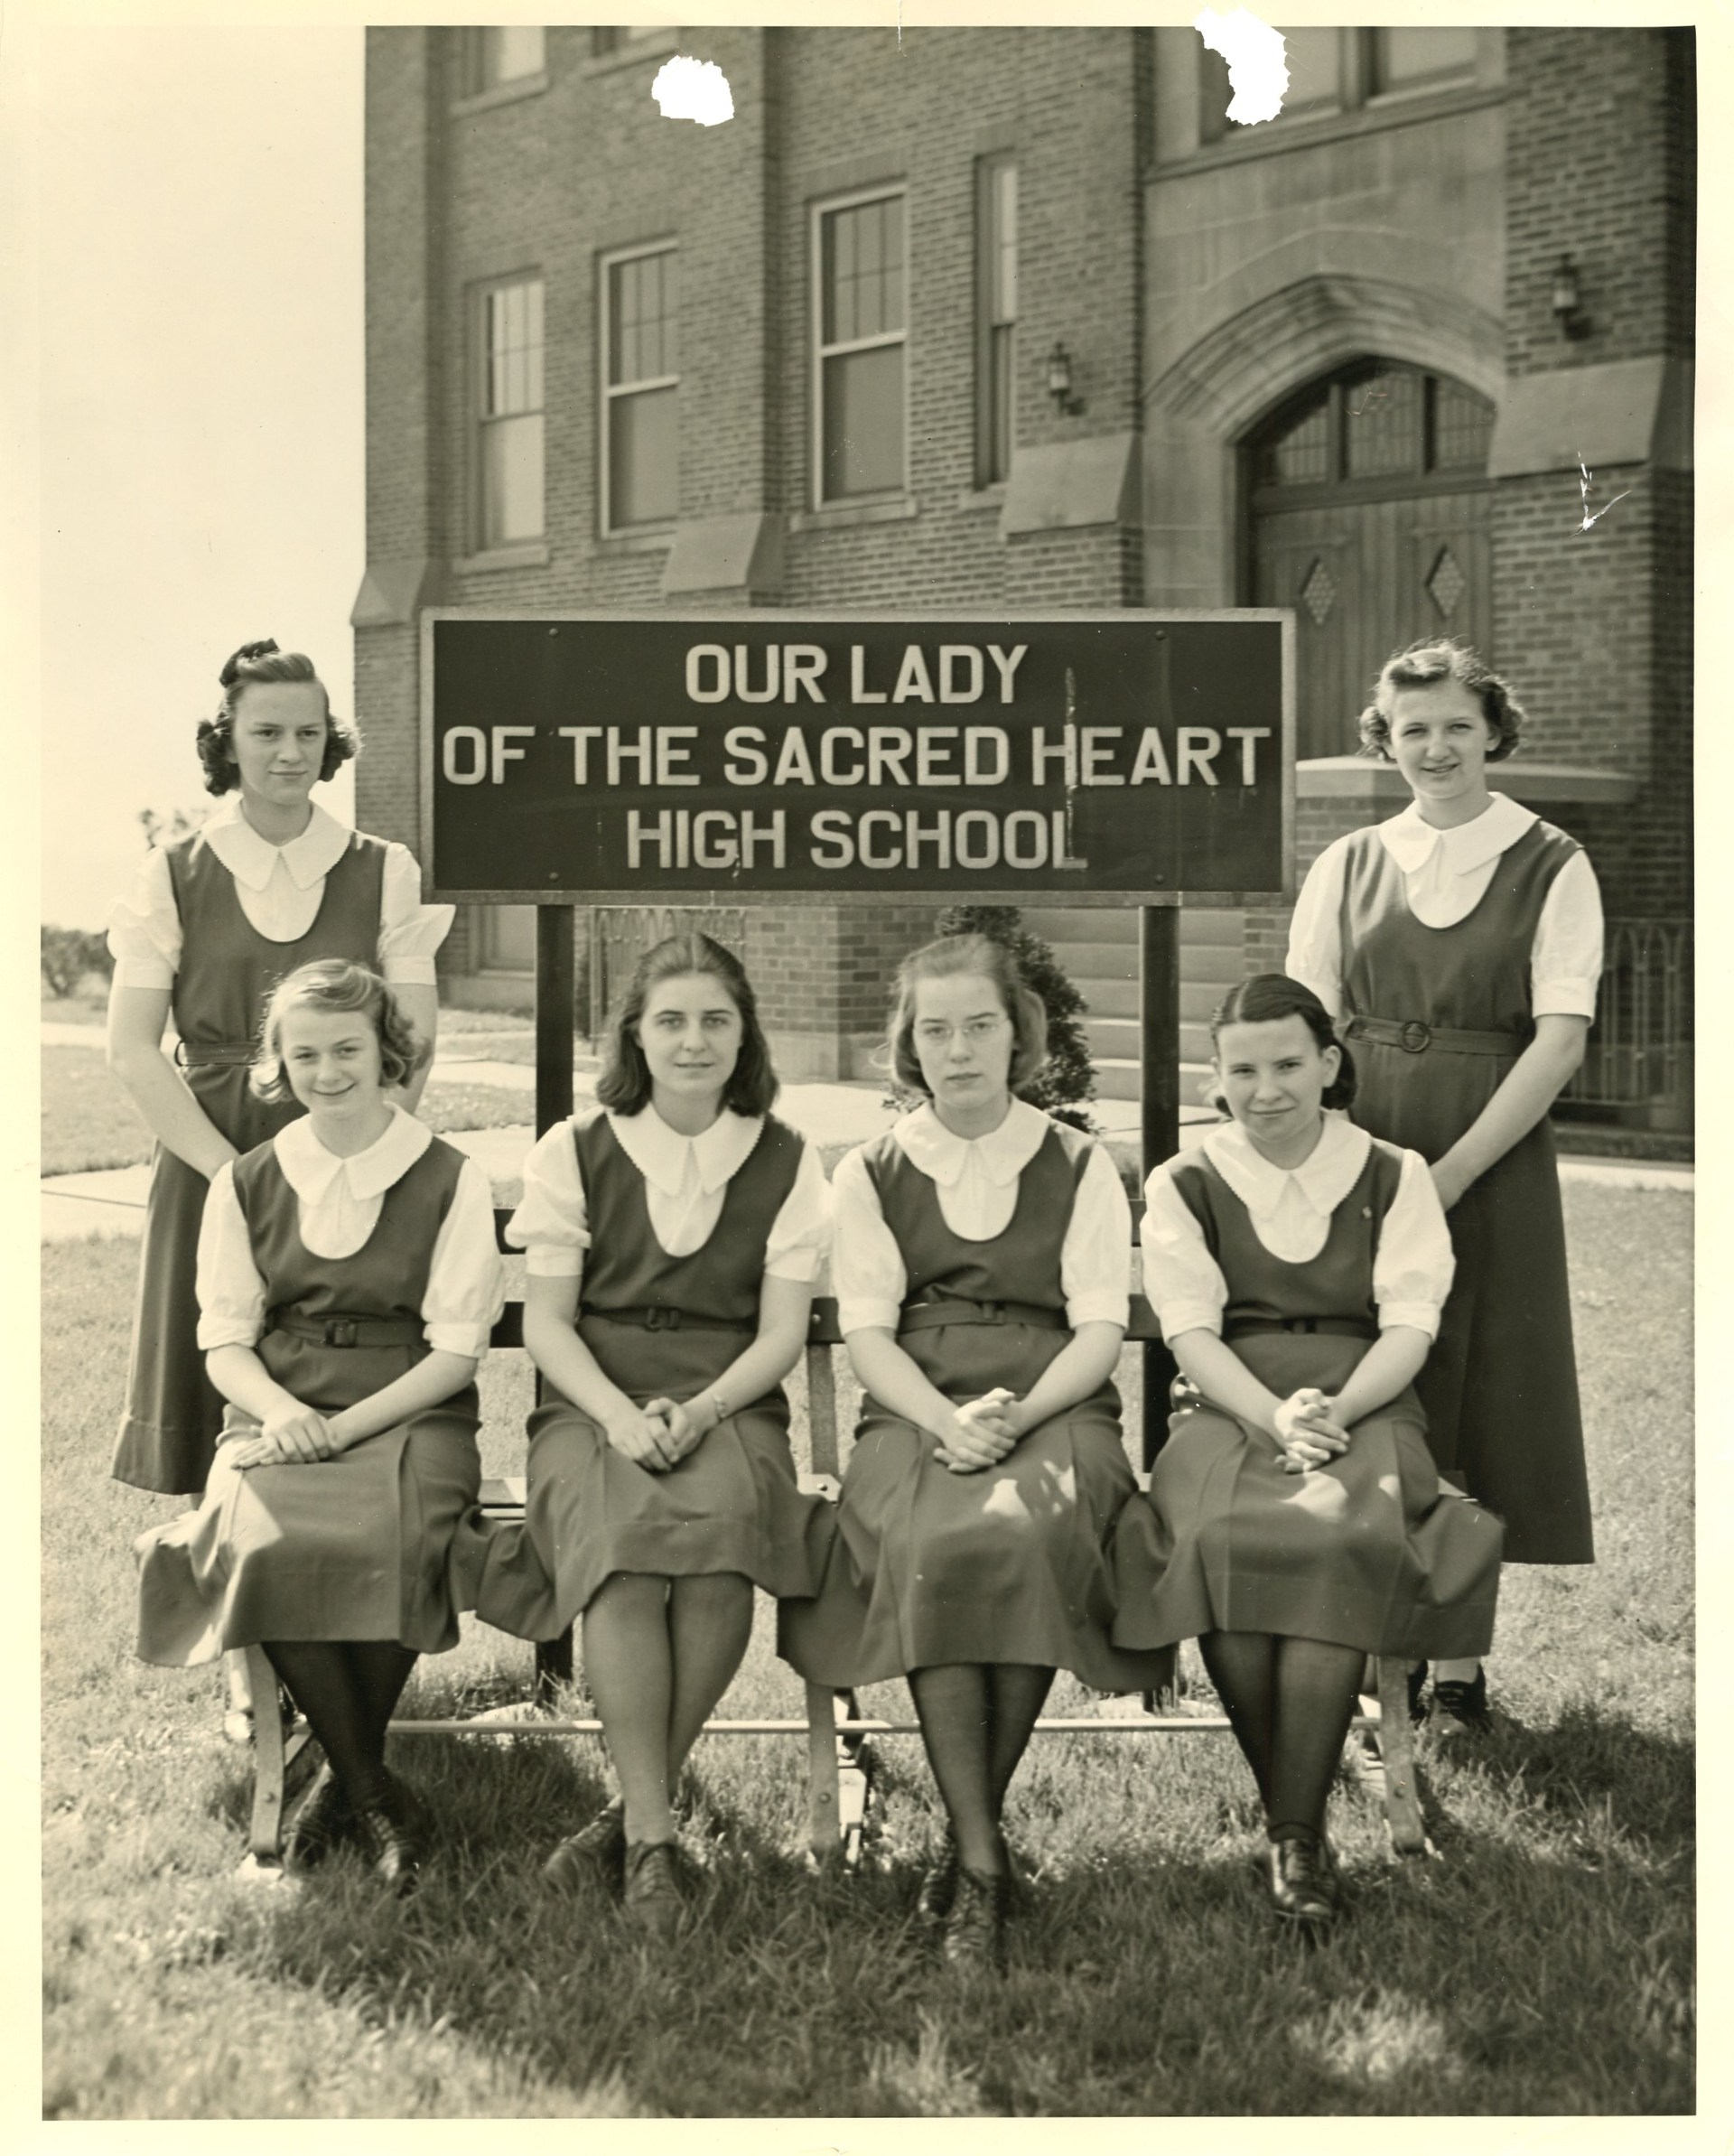 Six young women pose around the Our Lady of the Sacred Heart High School sign